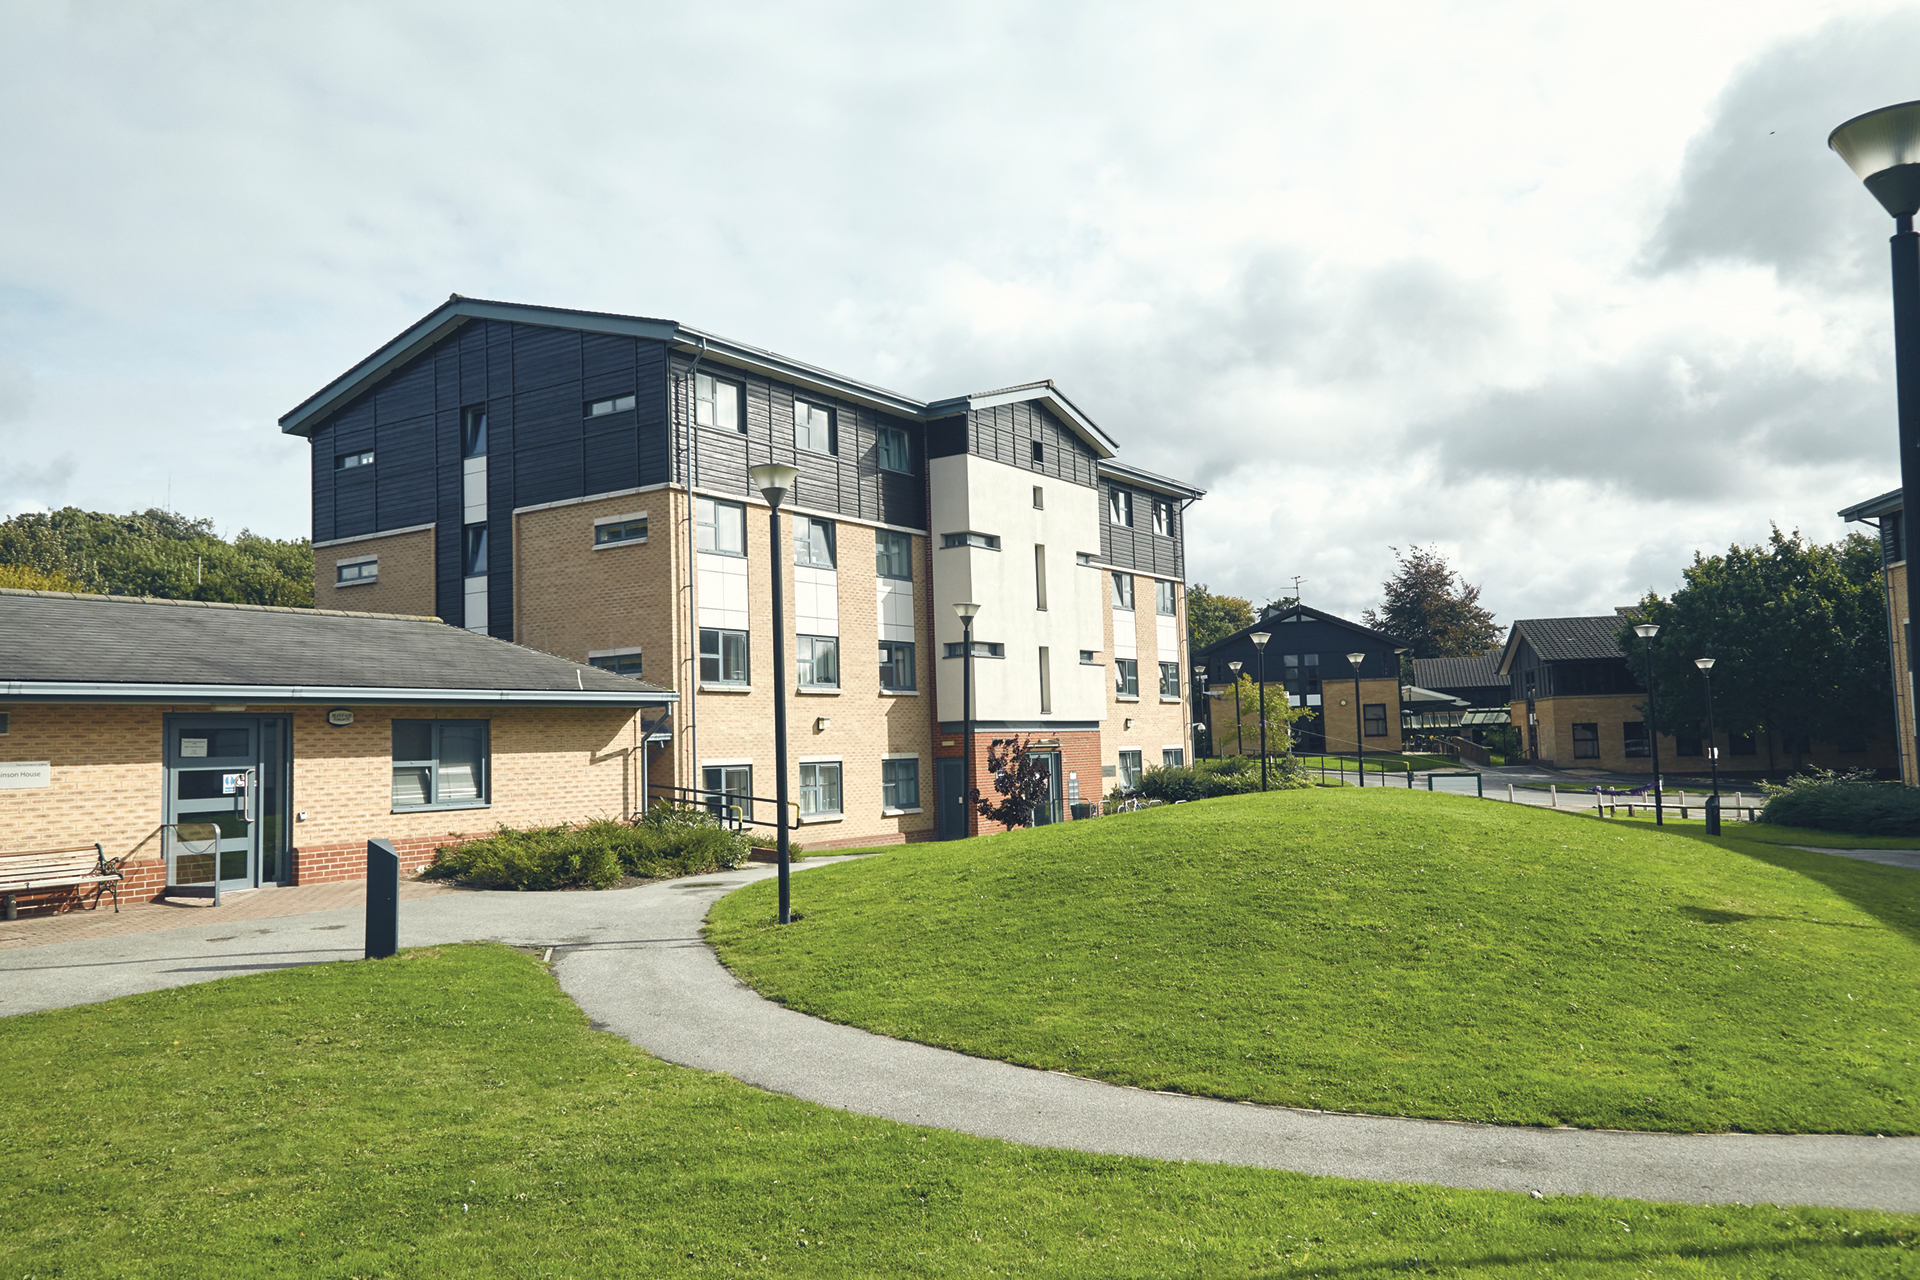 An external image of an accommodation block at the University of York.